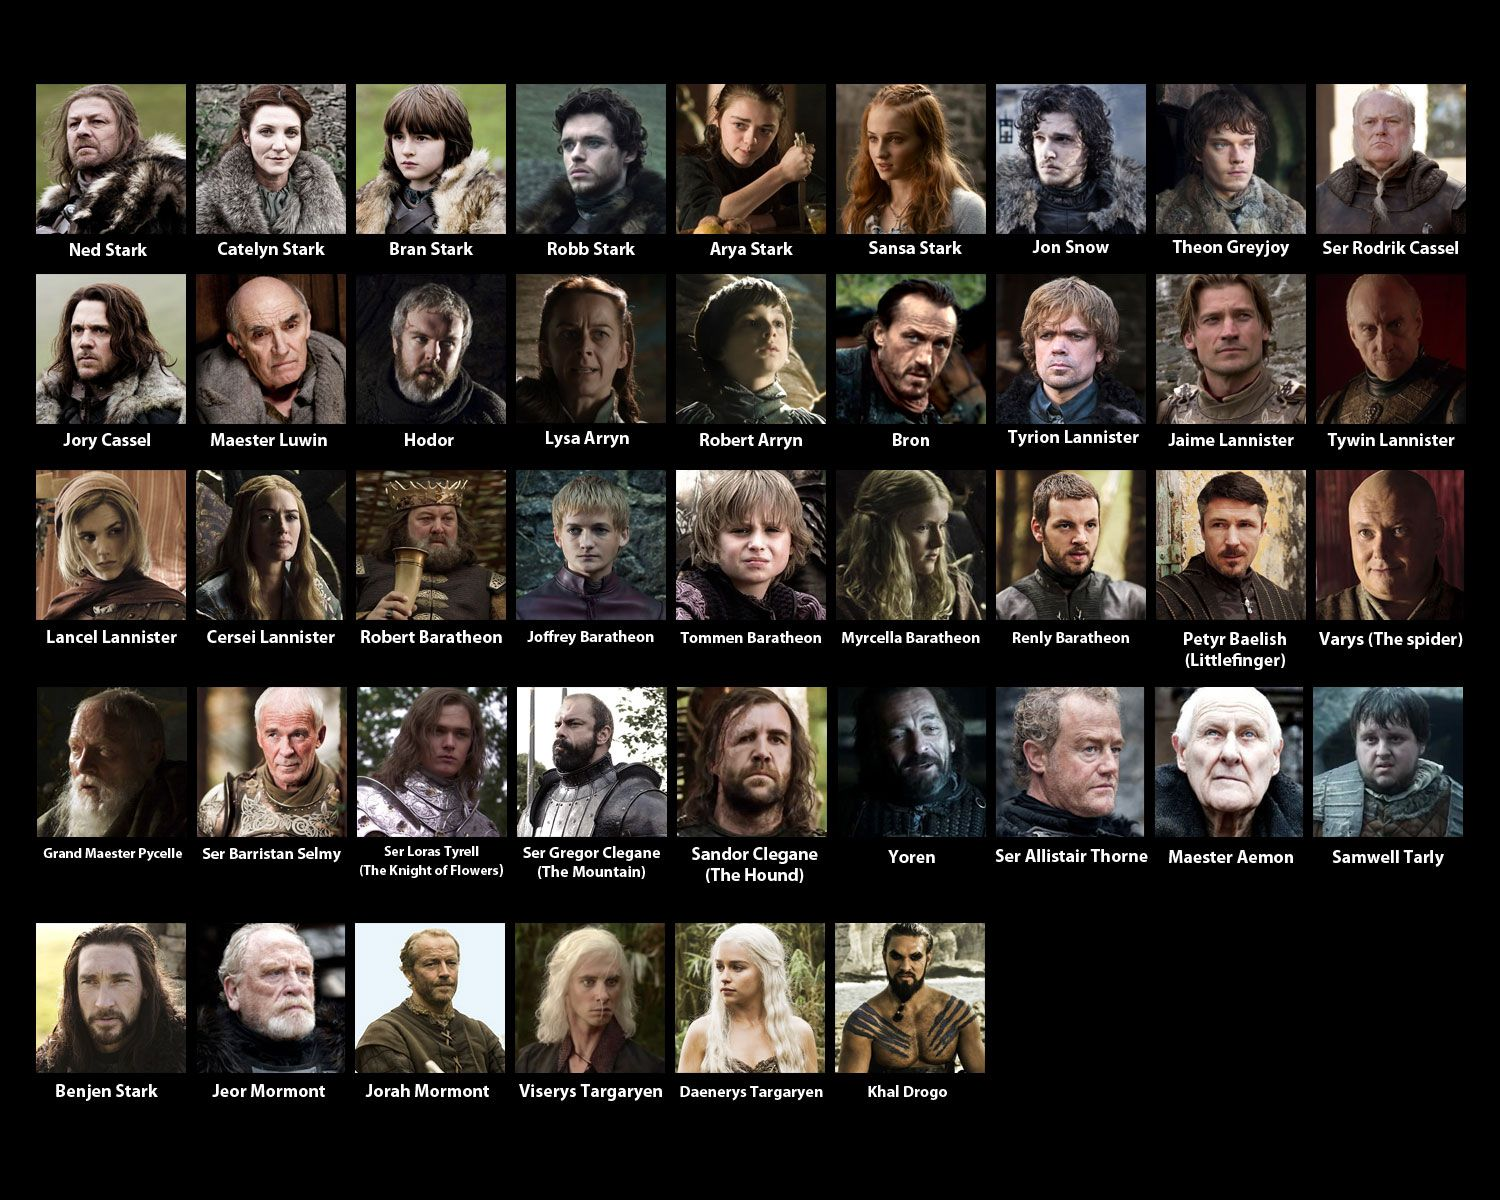 Game Of Thrones Season 2 Visual Guide With Images Game Of